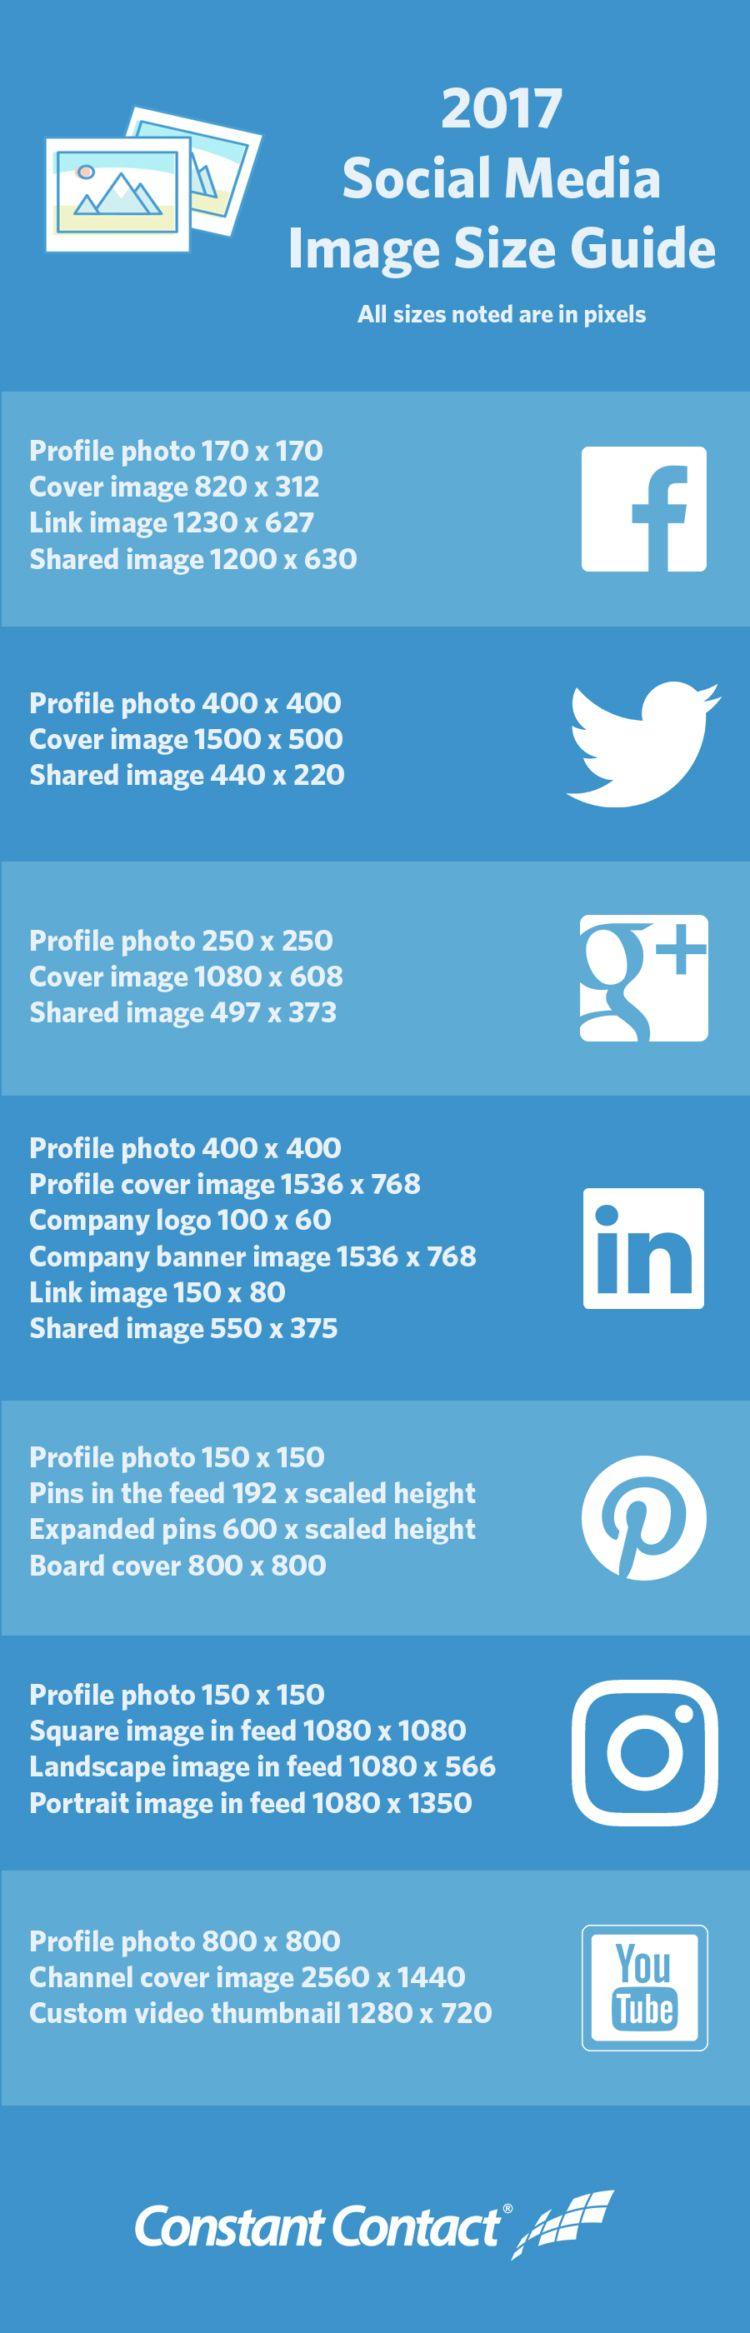 Social Media Image Size Cheat Sheet for 2017 [Infographic